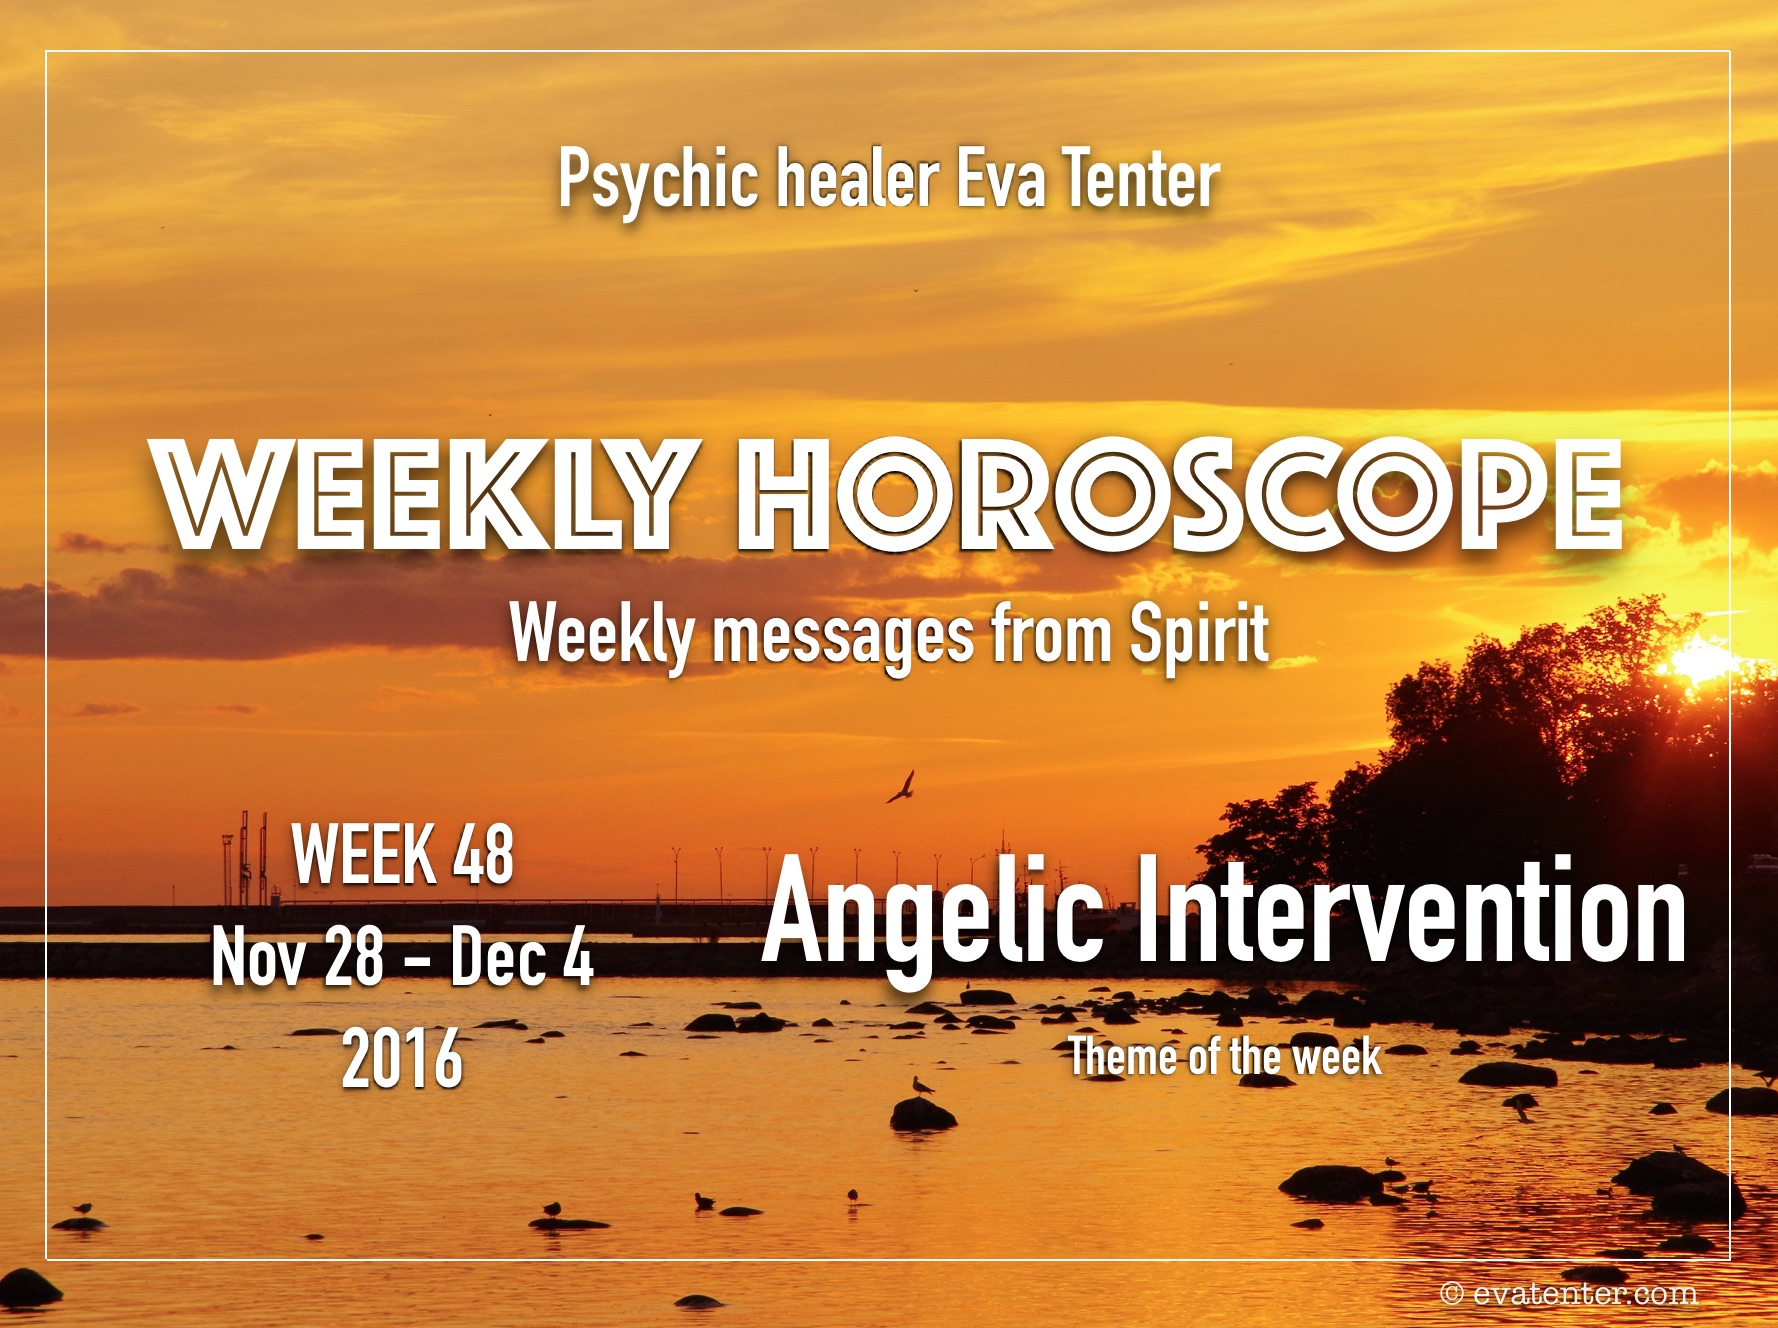 Current weekly horoscope